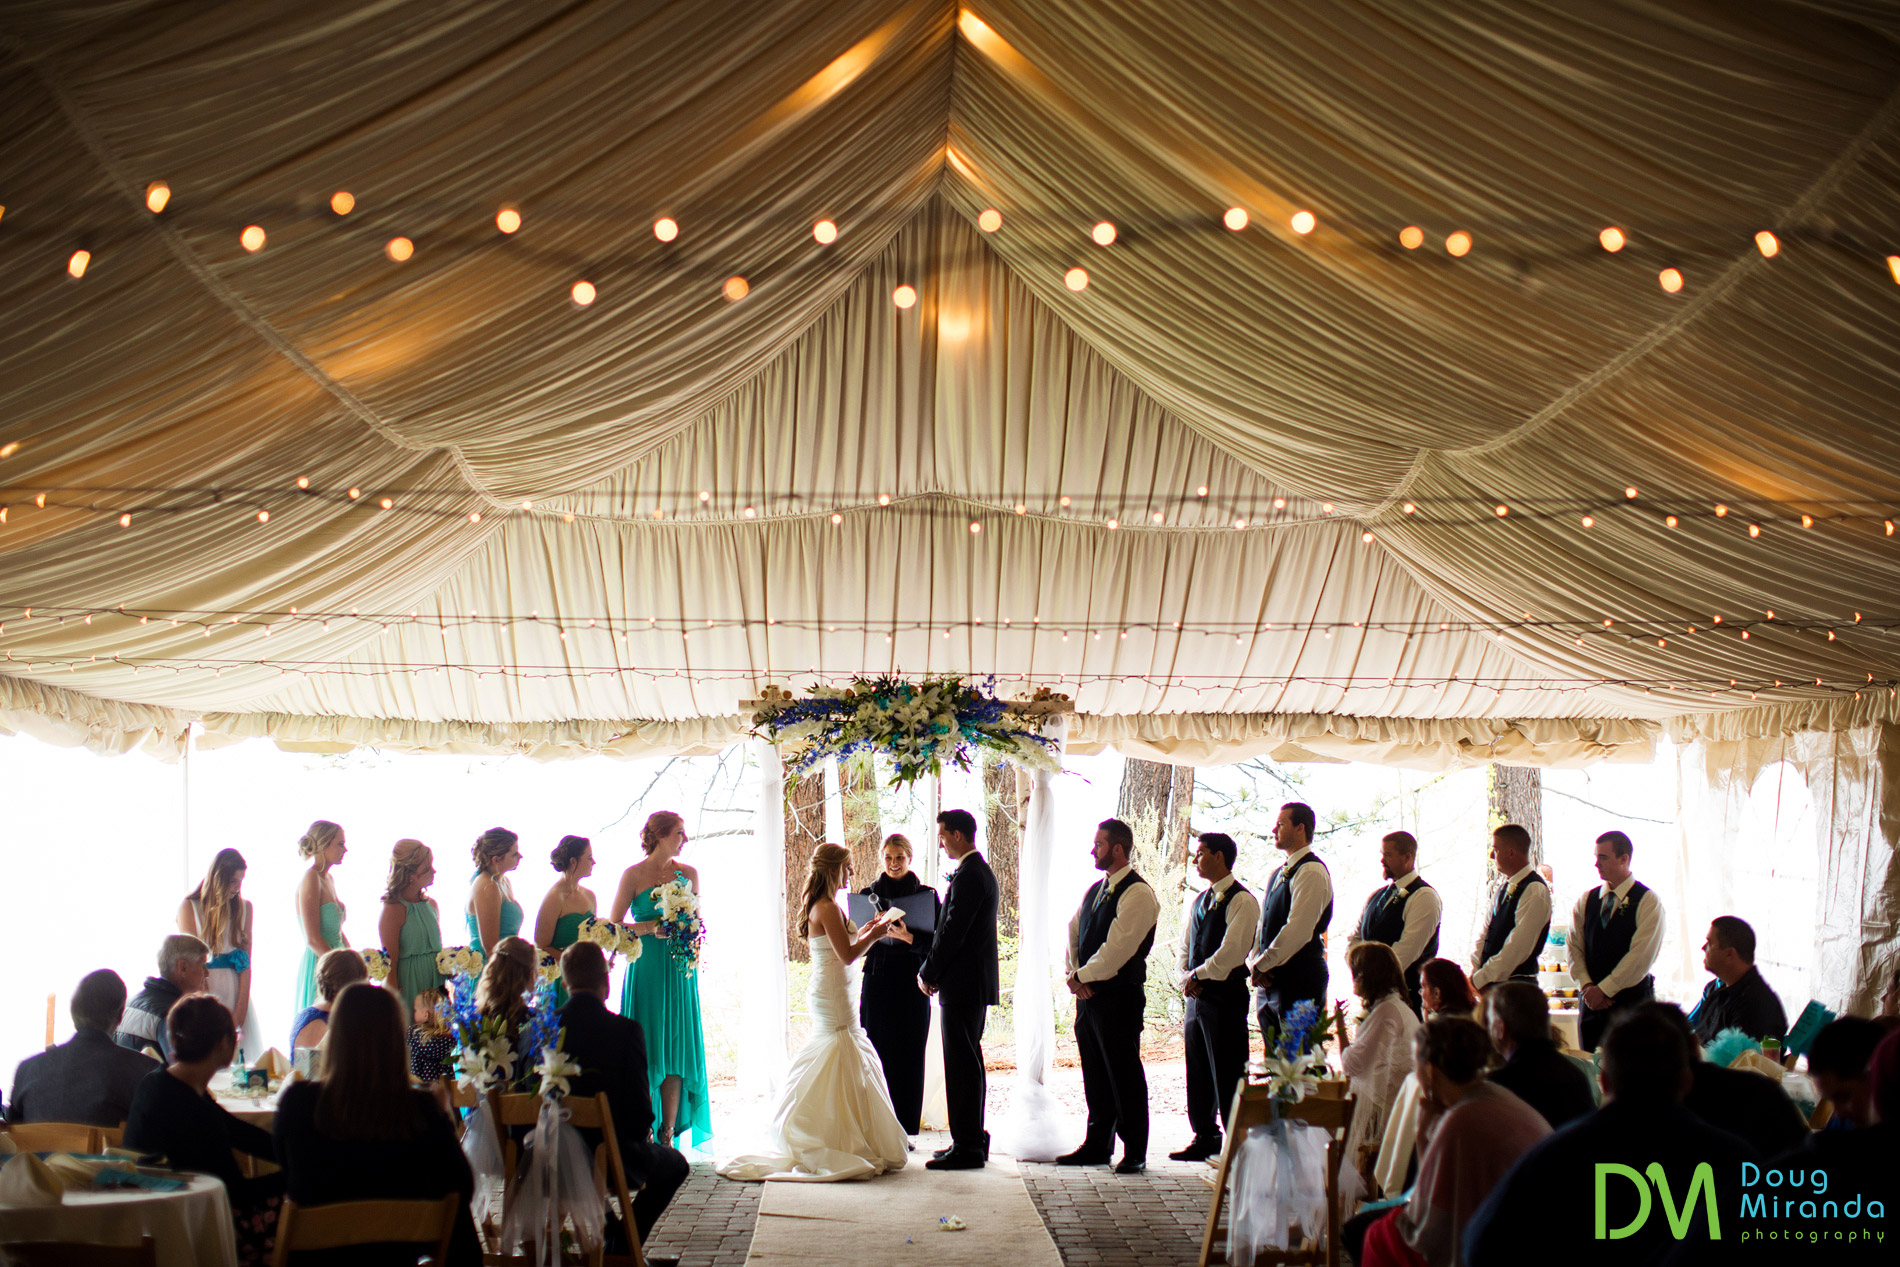 Even though it was raining outside the reception tent at Zephyr Cove still made for a great ceremony location.